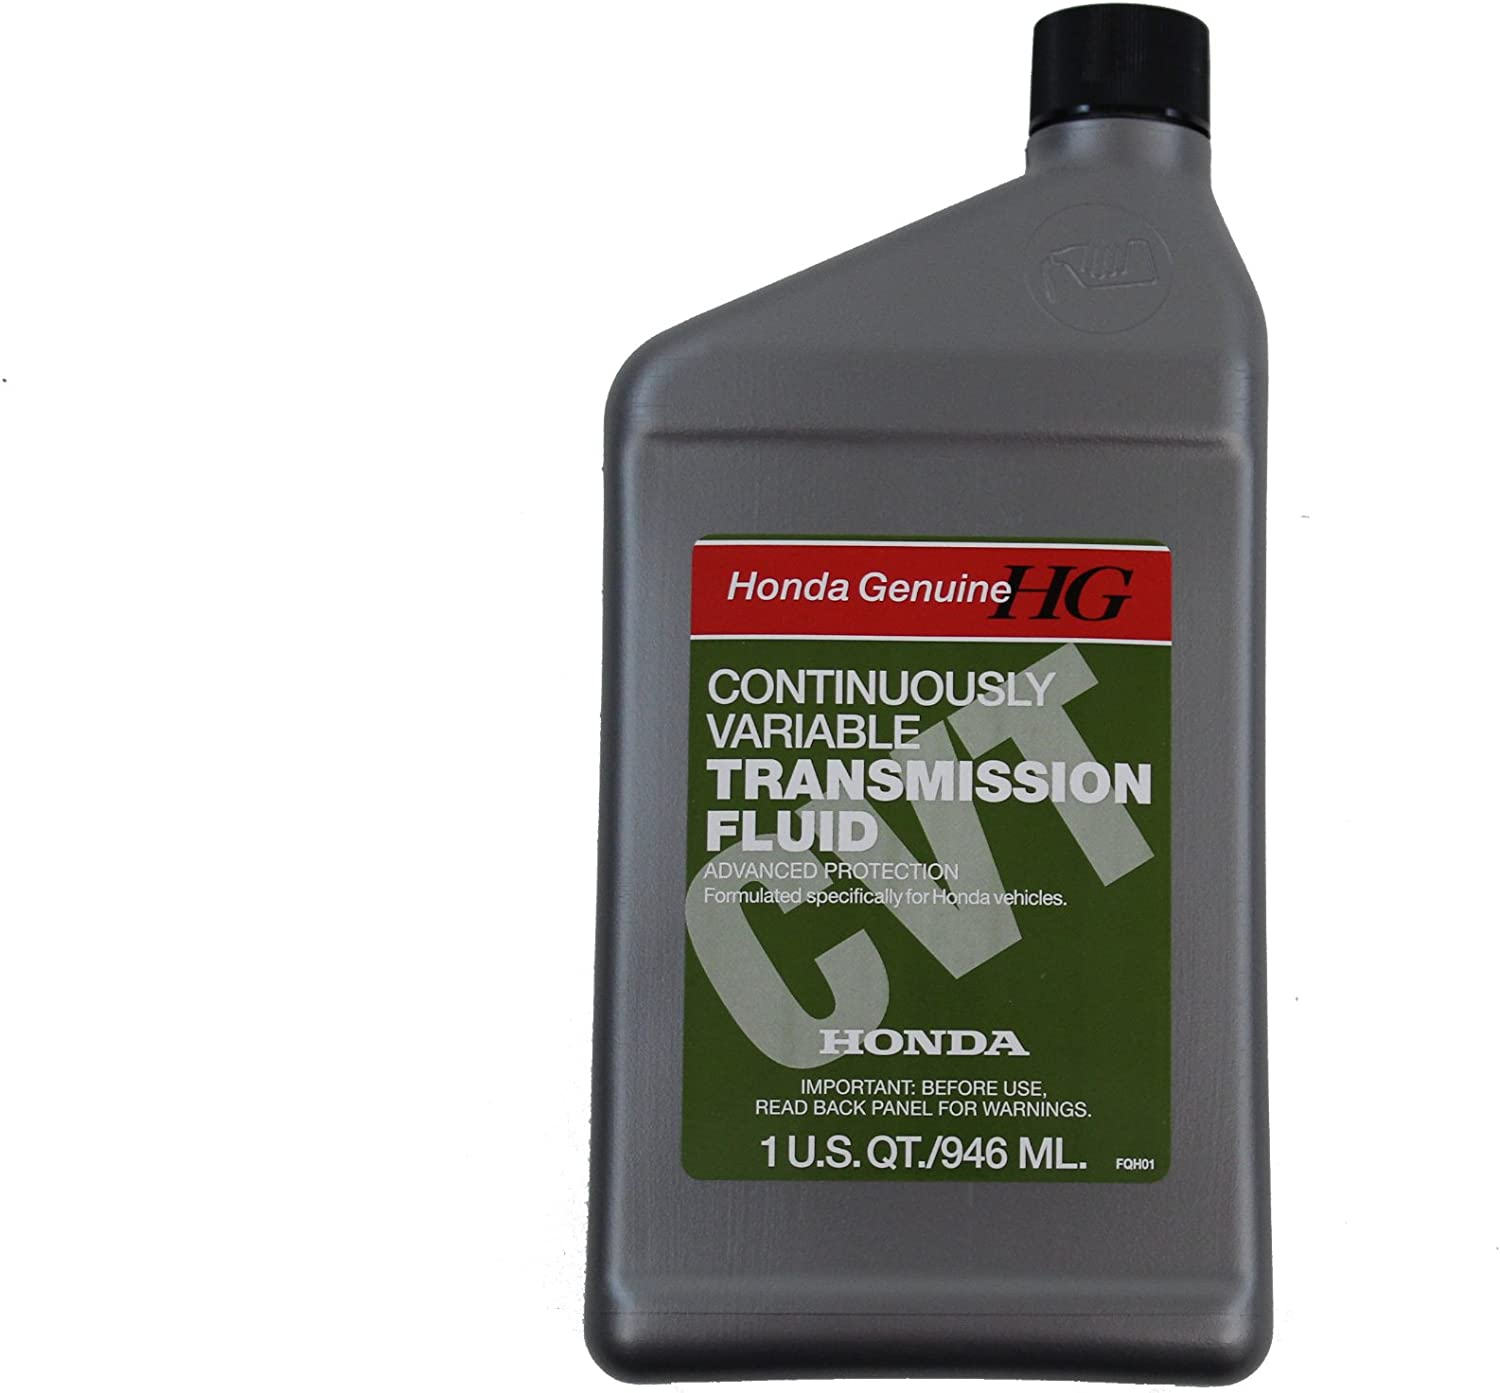 Genuine Honda Fluid CVT-1 Continuously Variable Transmission Fluid